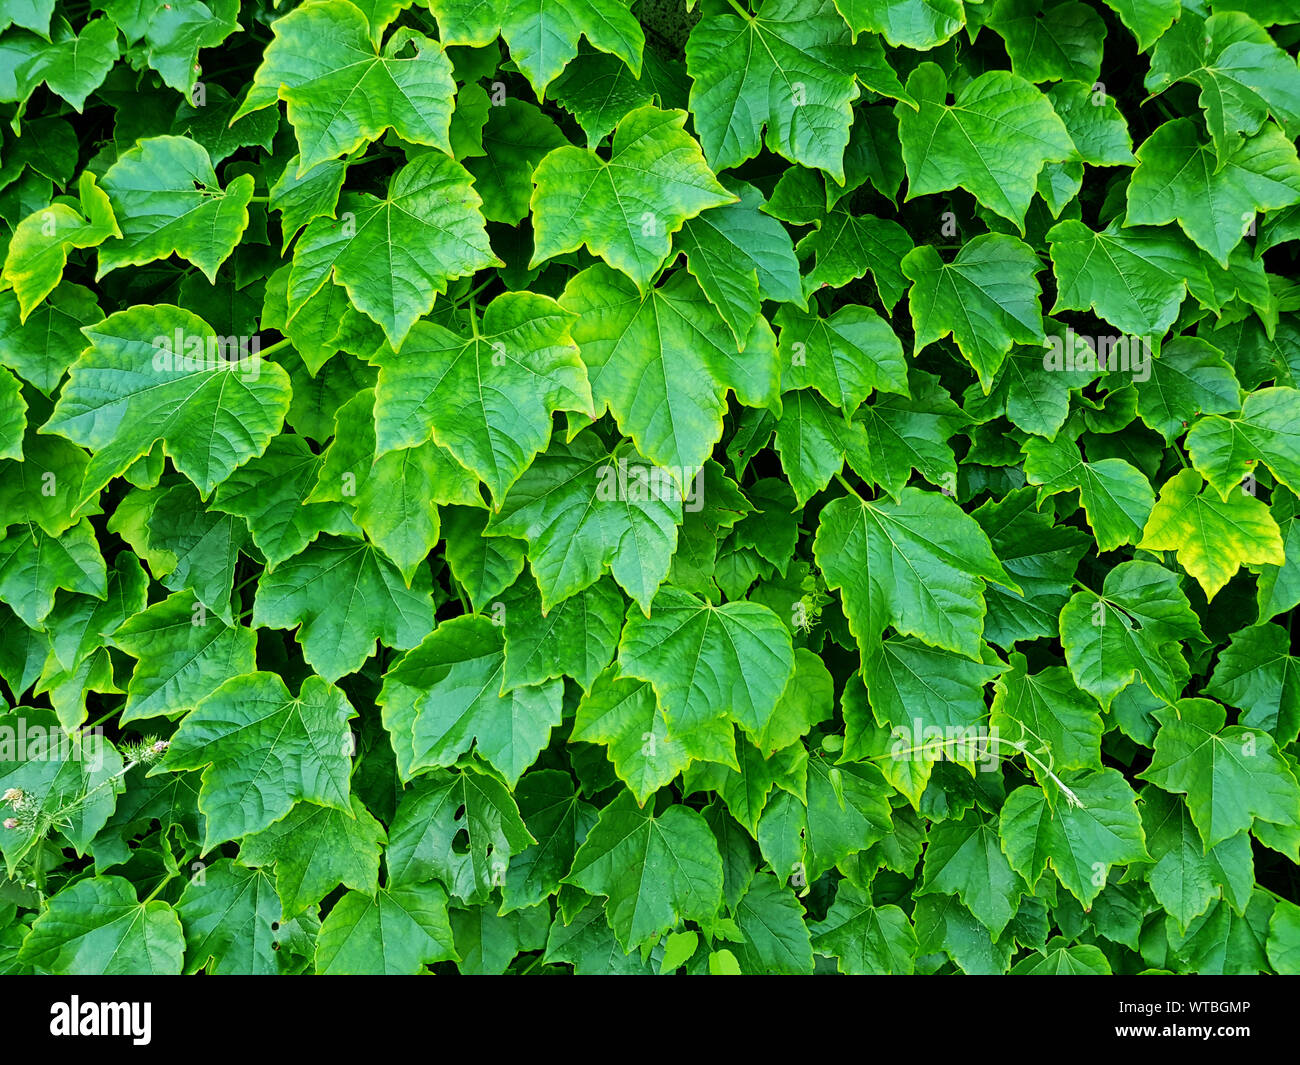 Green plant, Plant wall with lush green color nature background, Natural green leaf wall, Texture background. Stock Photo